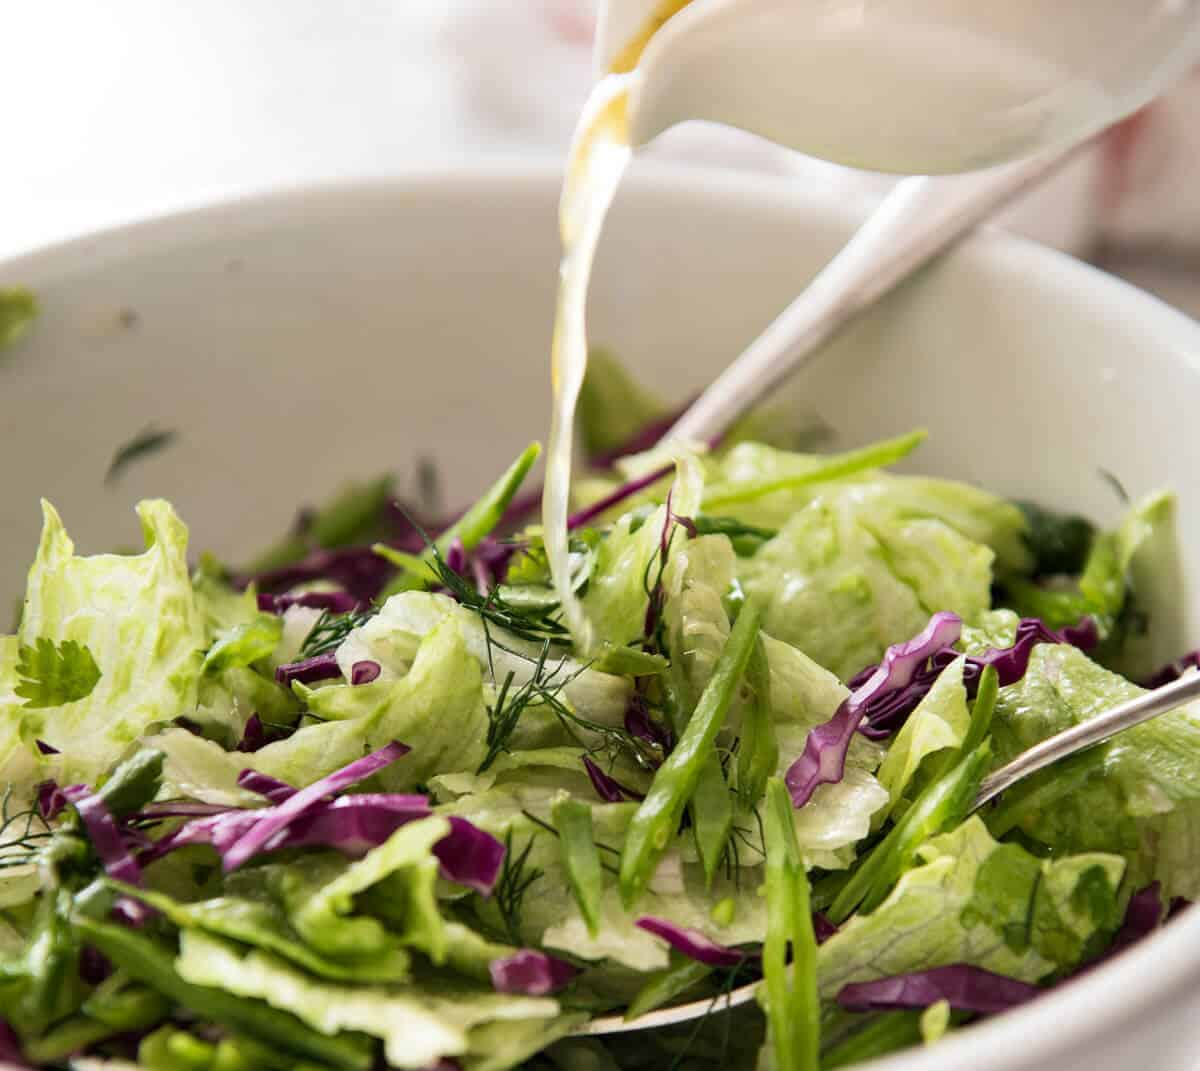 Iceberg Lettuce Salad with Dill www.recipetineats.com